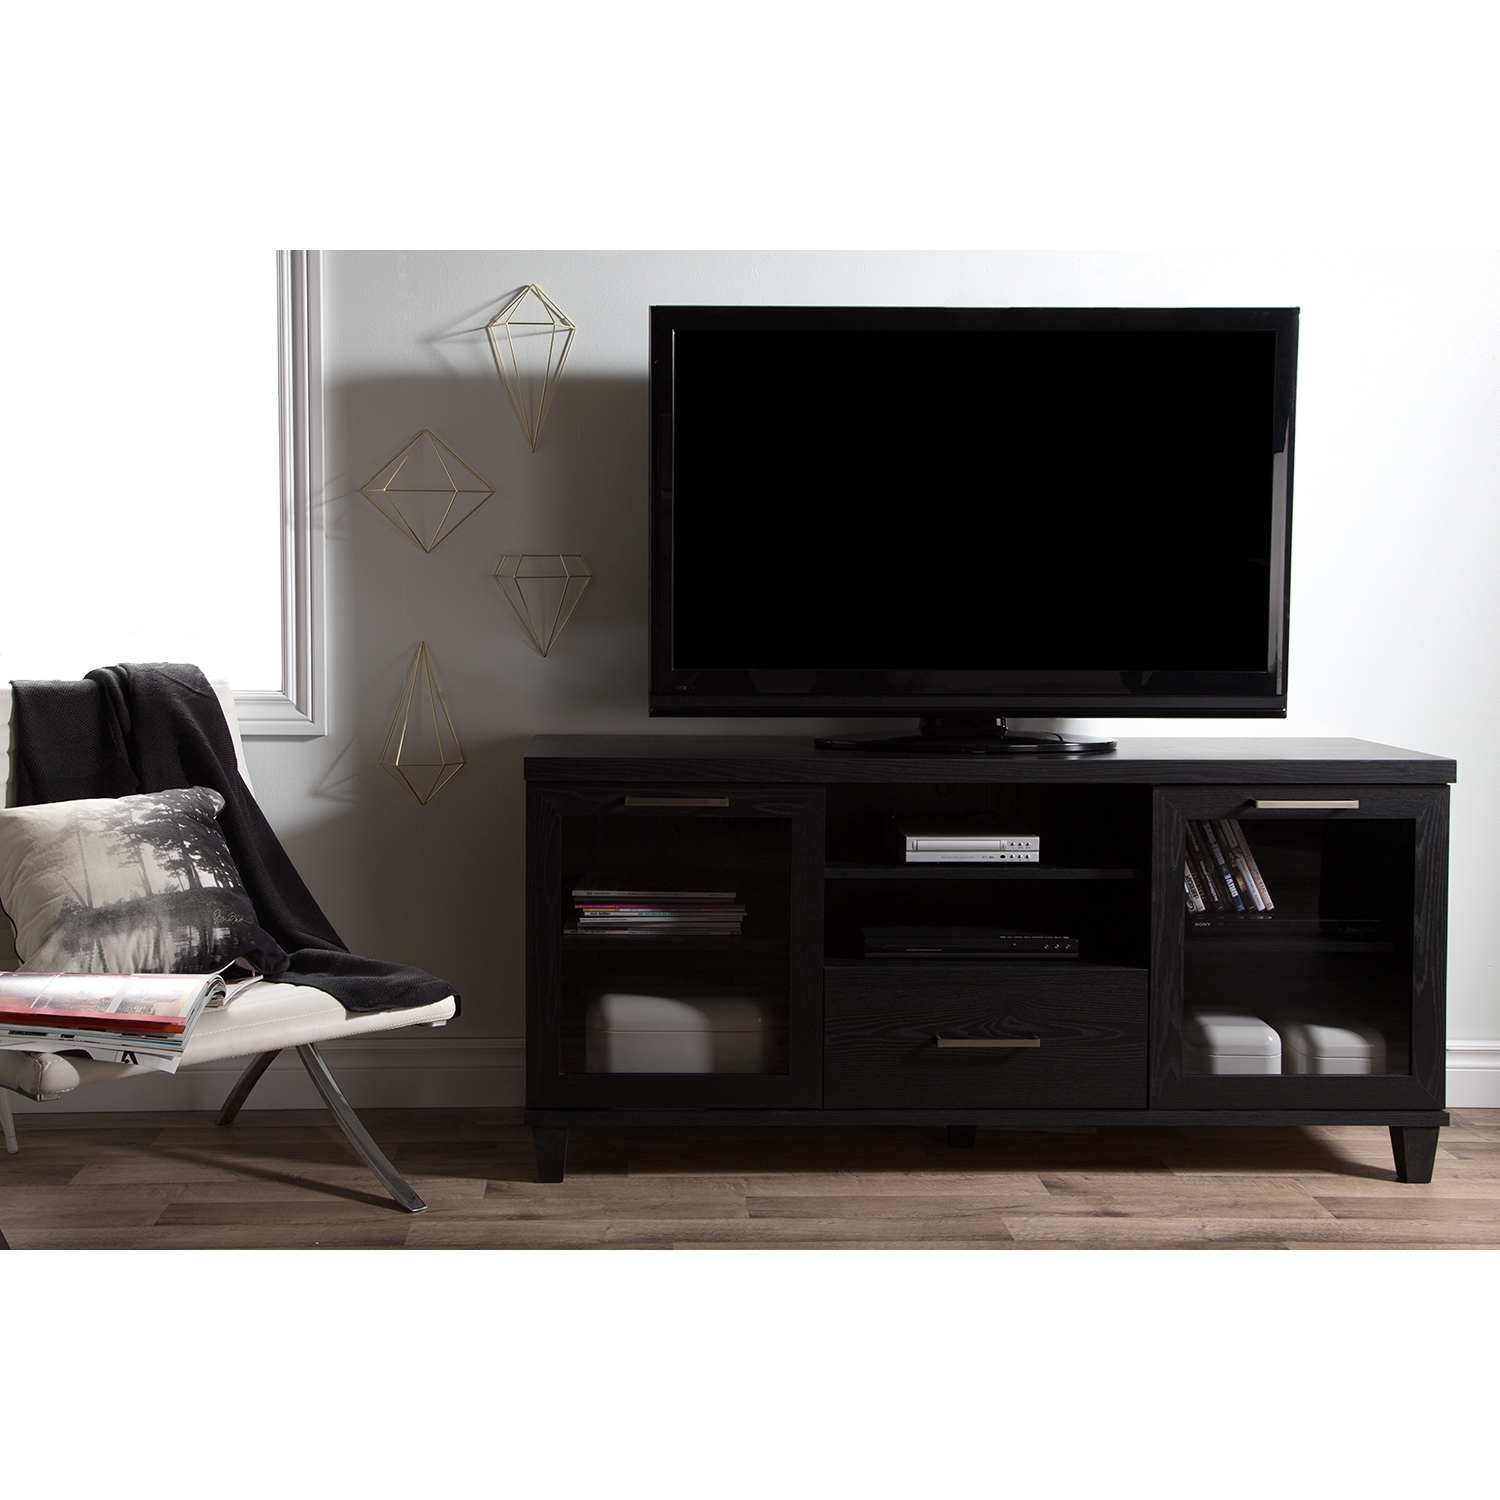 Adrian TV Stand - Black Oak - SS-9073662